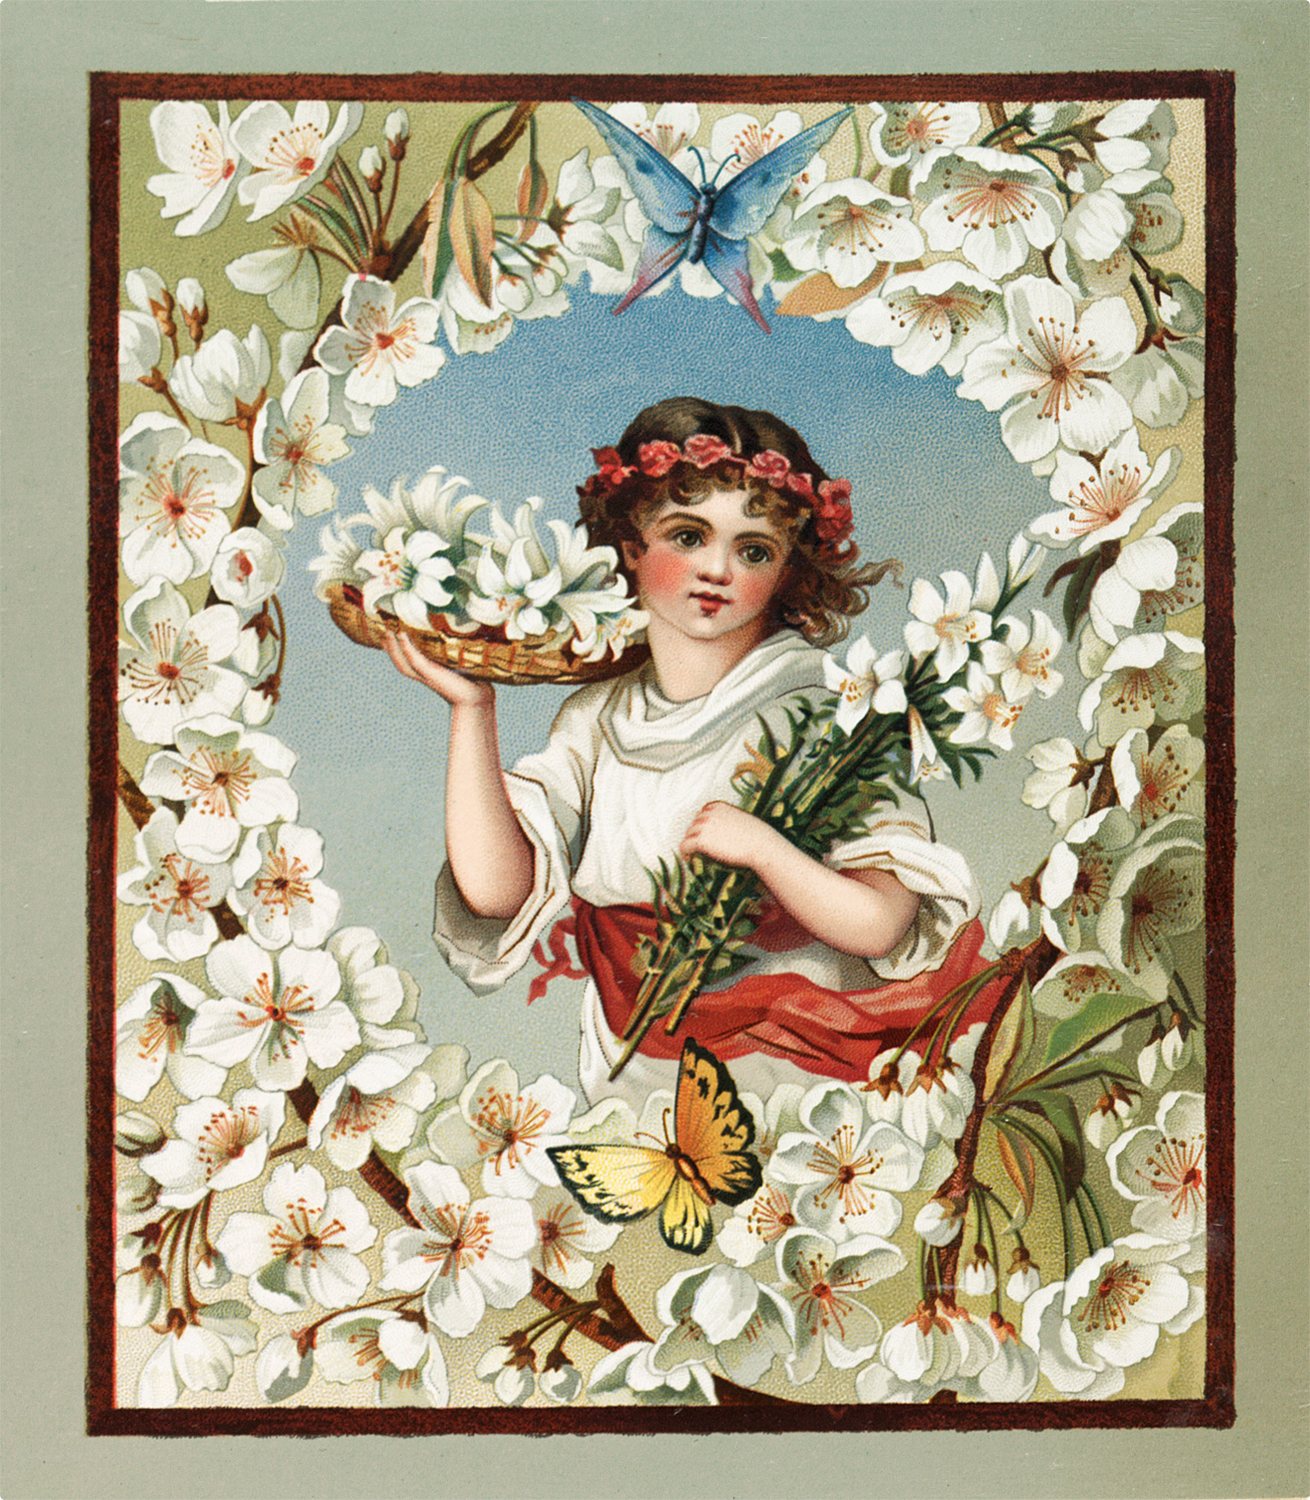 Vintage Sweet Flower Girl with Butterflies Image! - The Graphics Fairy